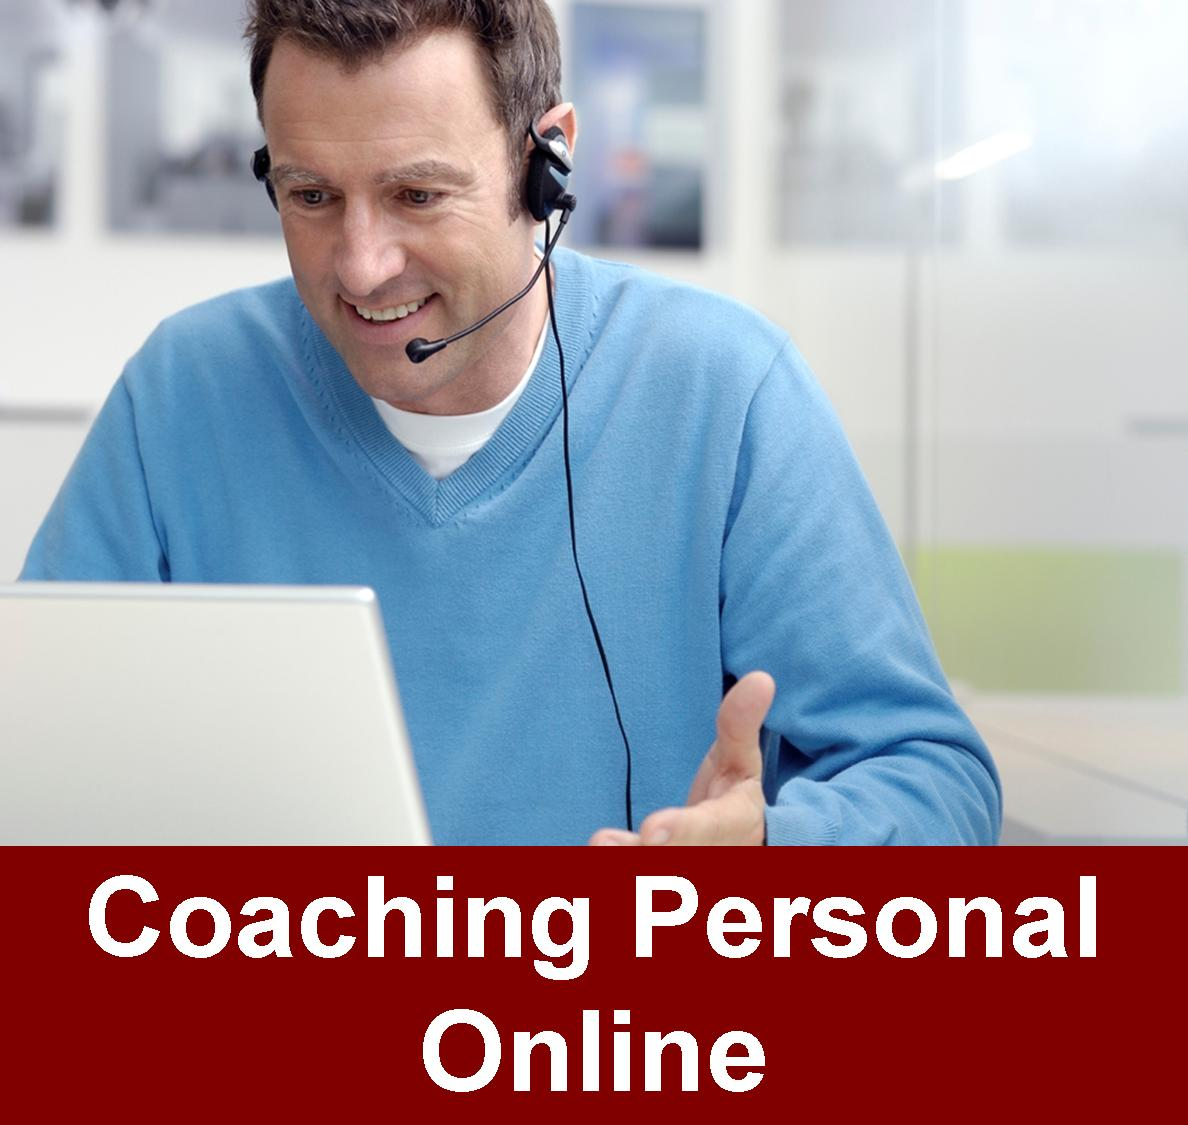 sesiones-de-coaching-personal-online-experiencia-coaching